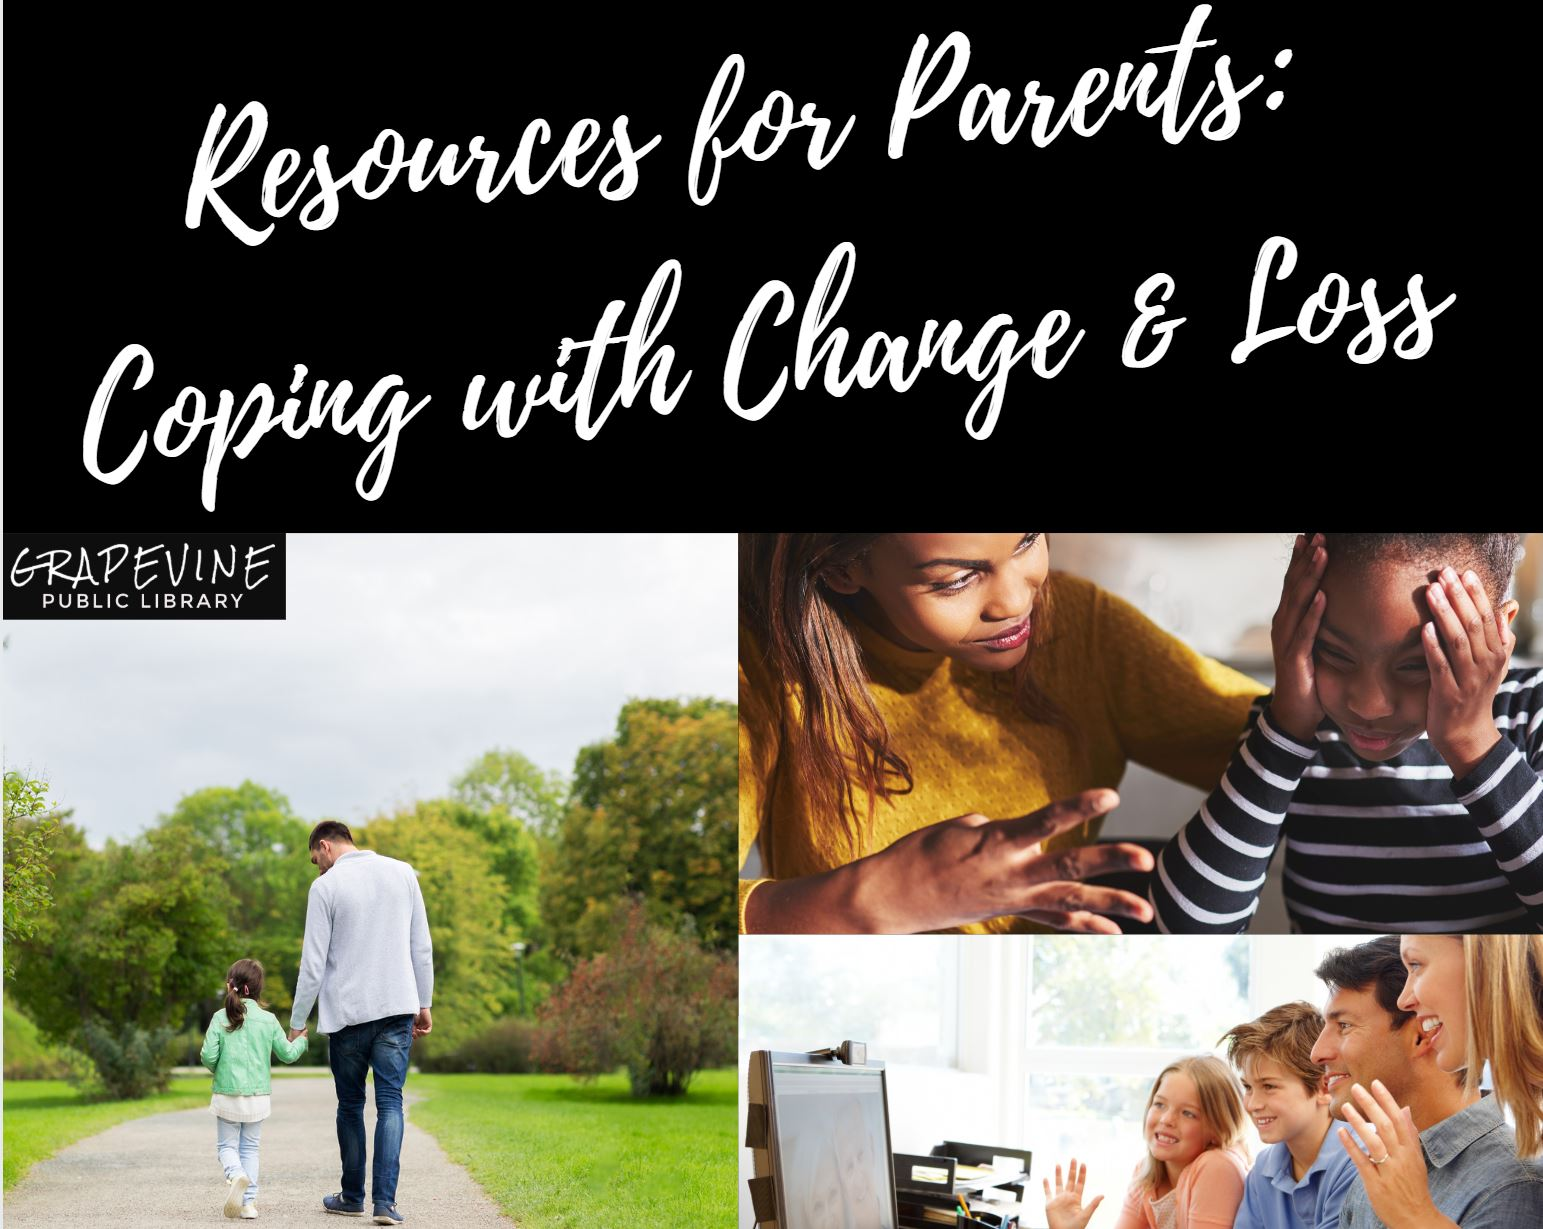 Resources for Parents Coping with Change and Loss